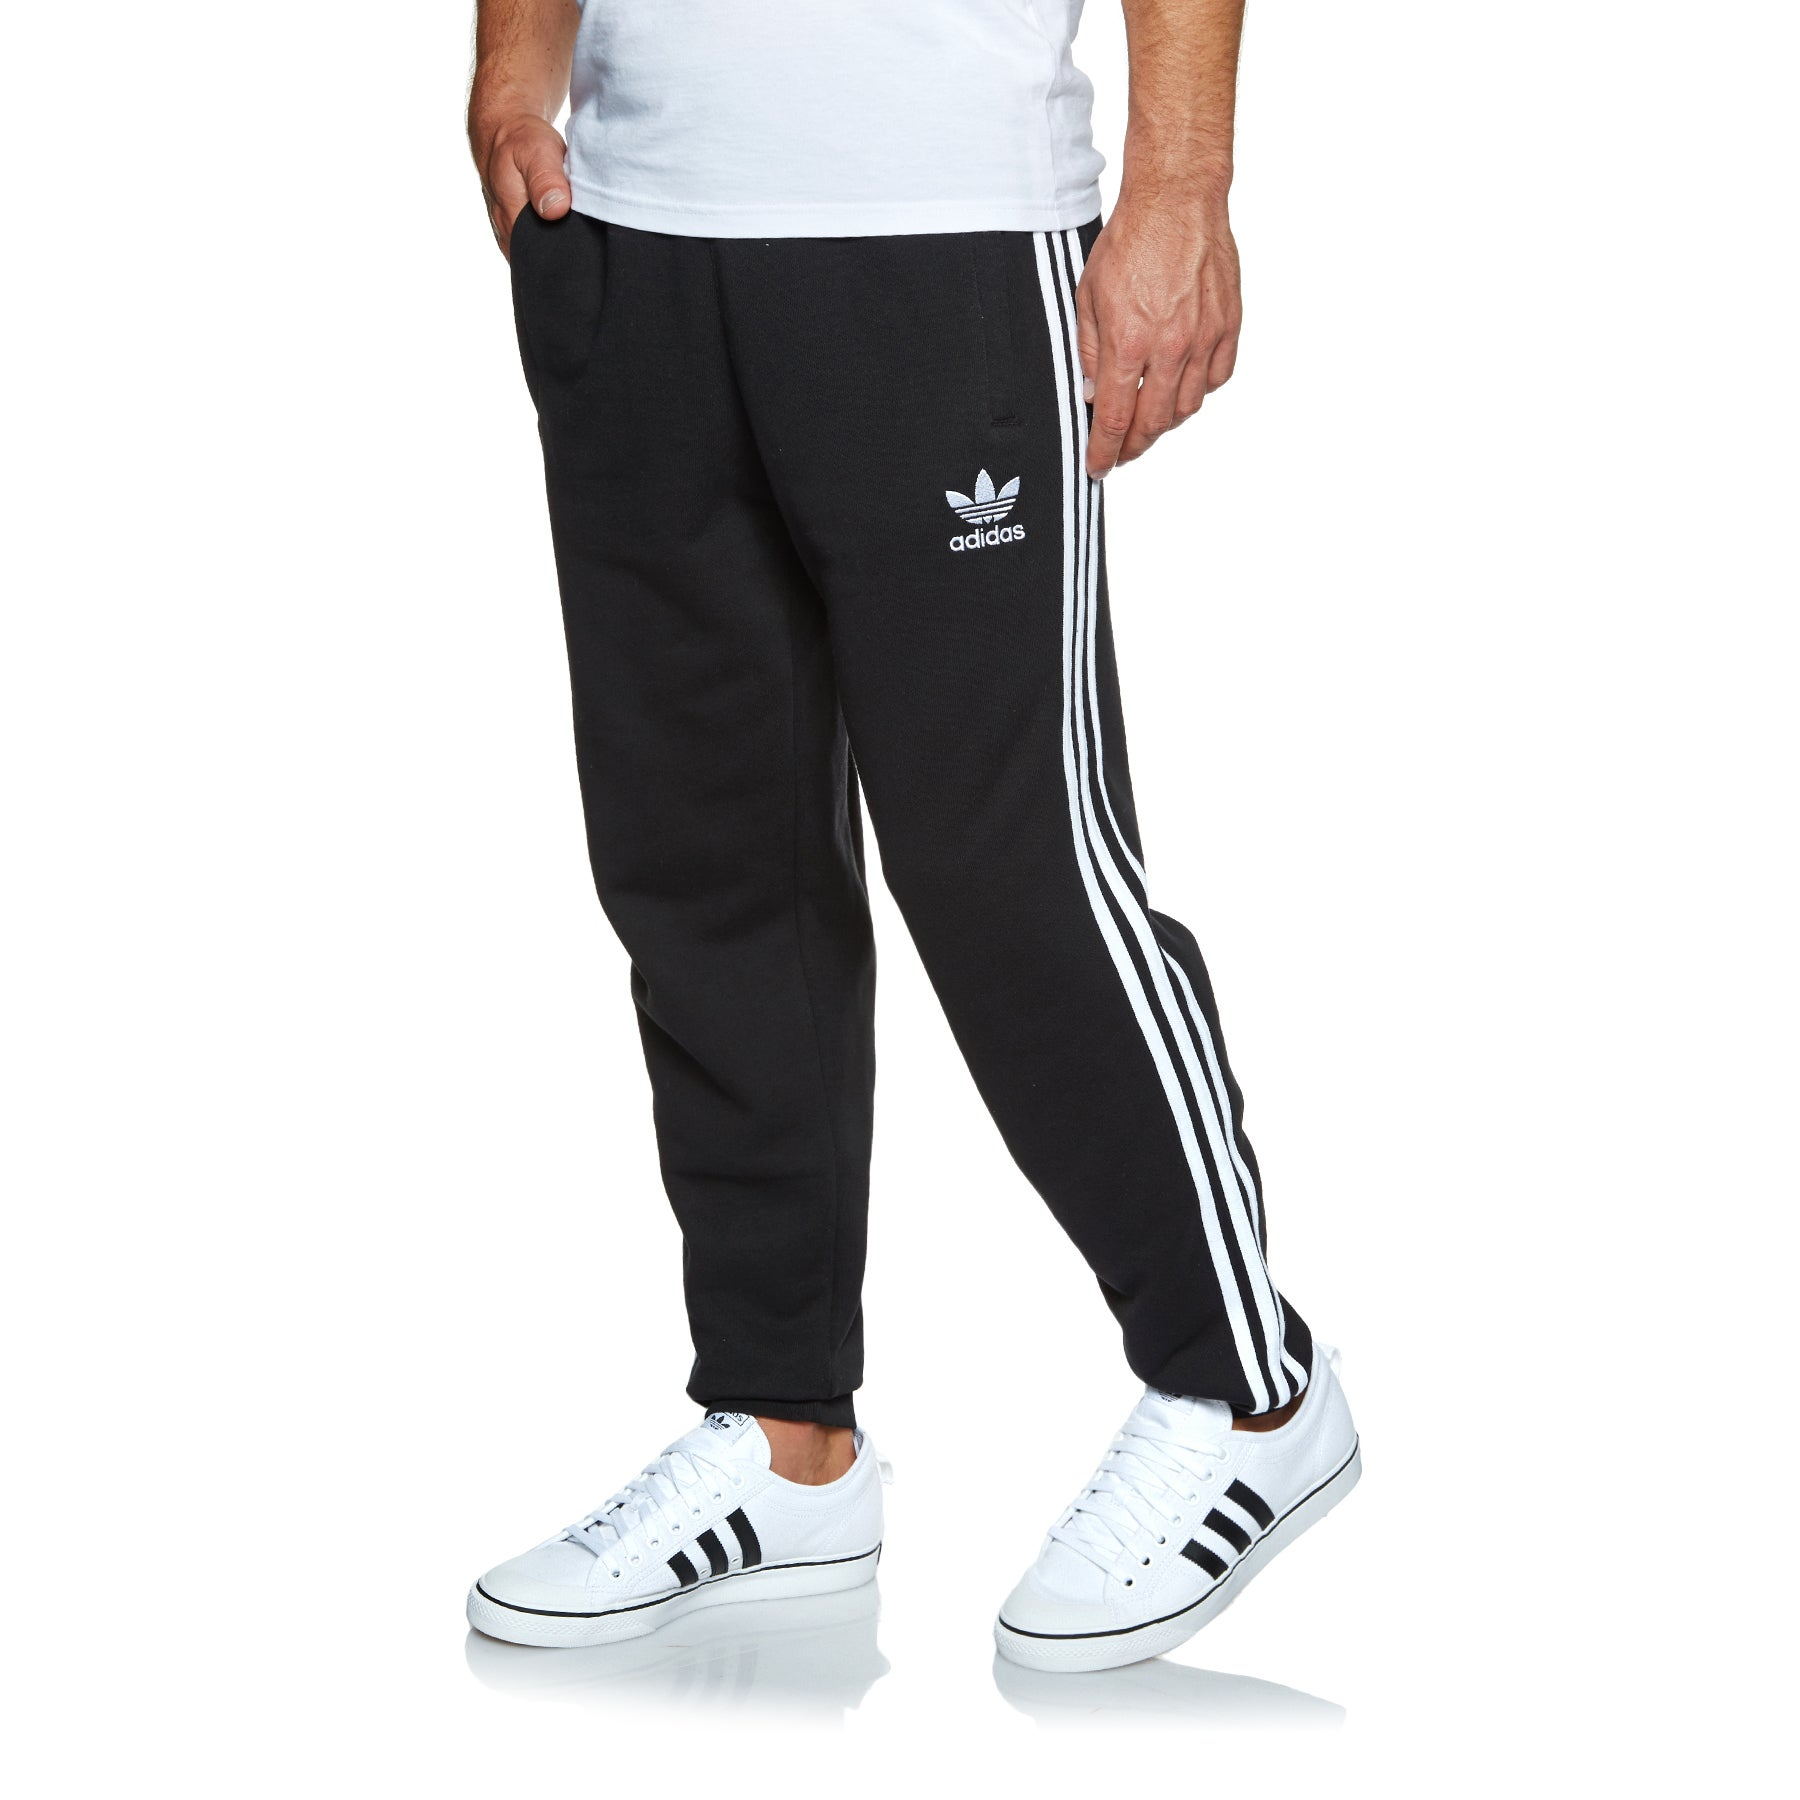 Adidas Originals 3-Stripes Jogging Pants